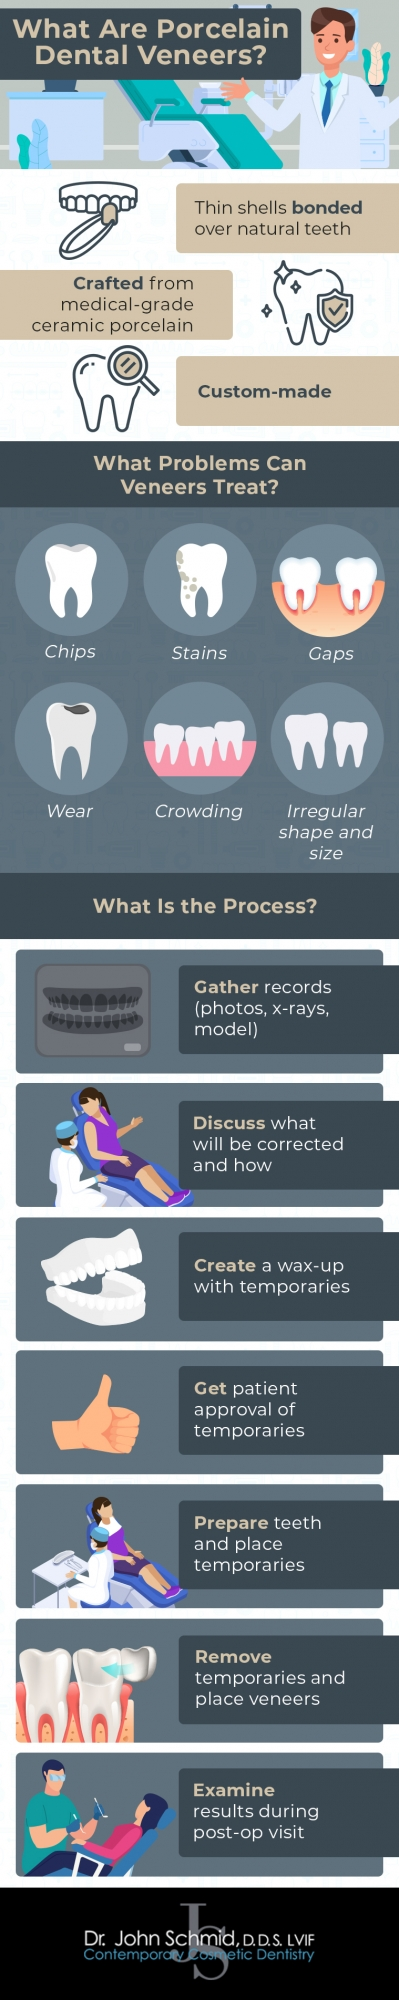 Porcelain veneers overview and process infographic